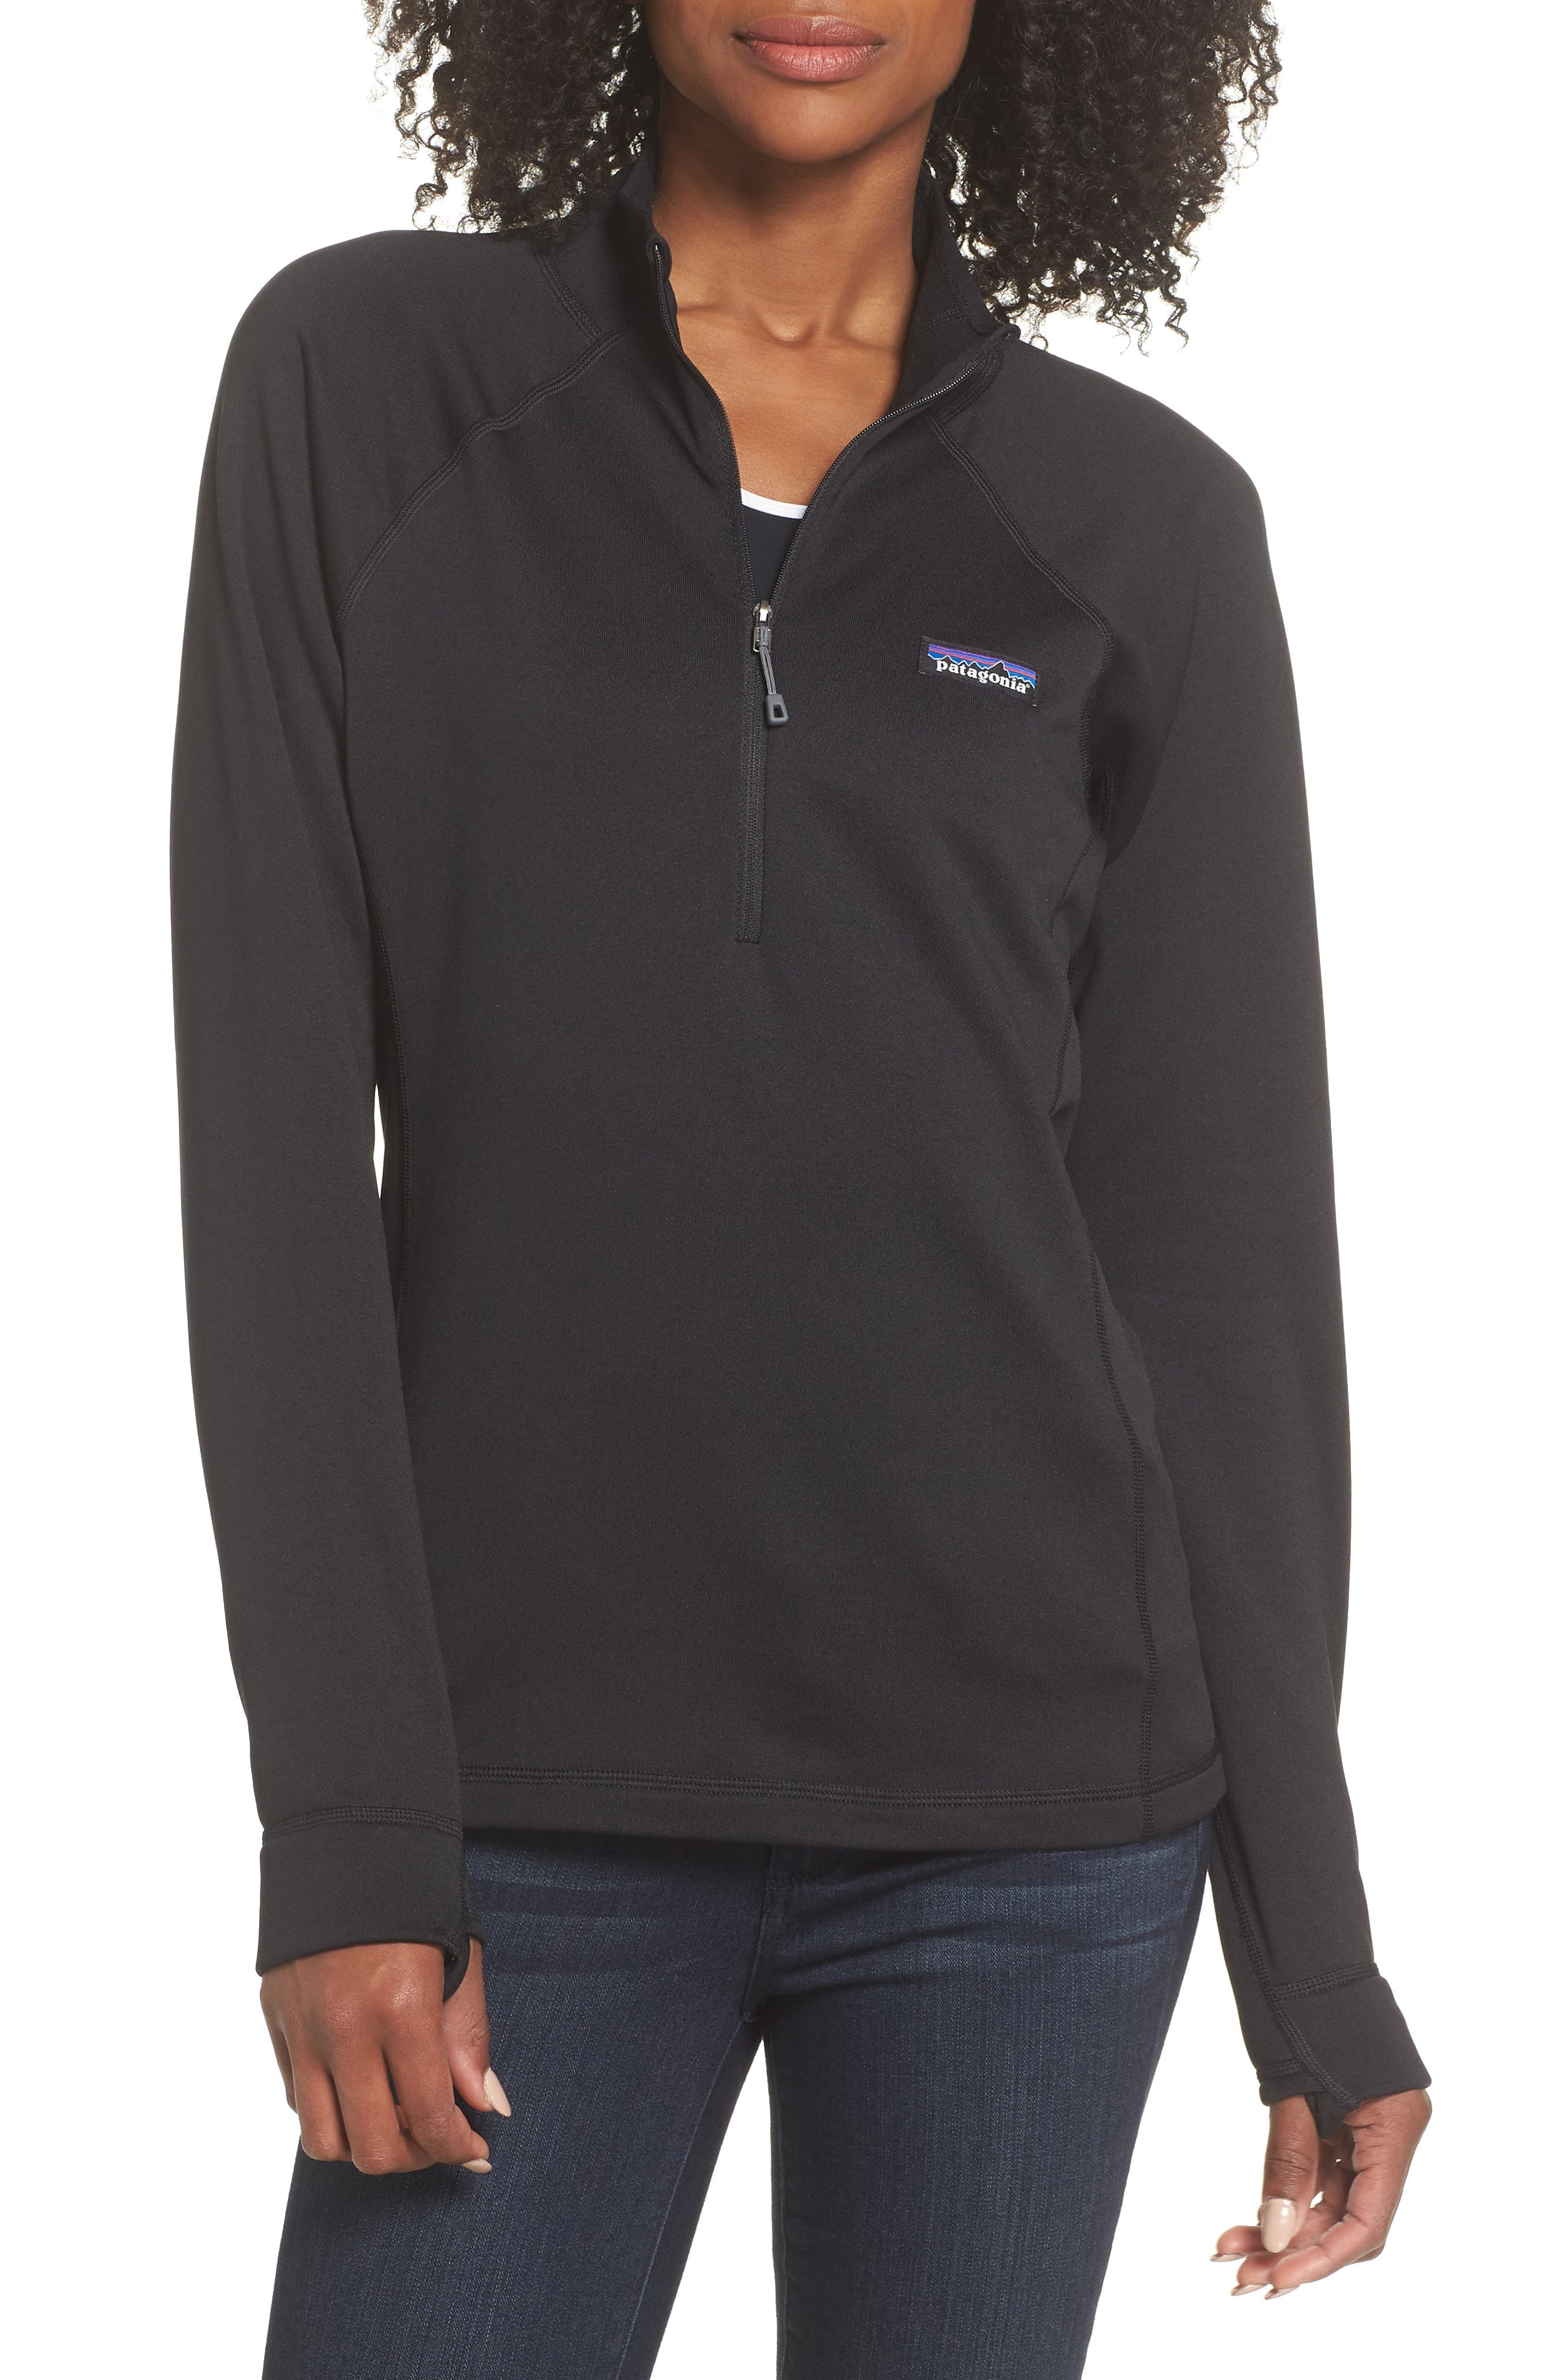 Crosstrek Quarter Zip Jacket,                         Main,                         color, 001